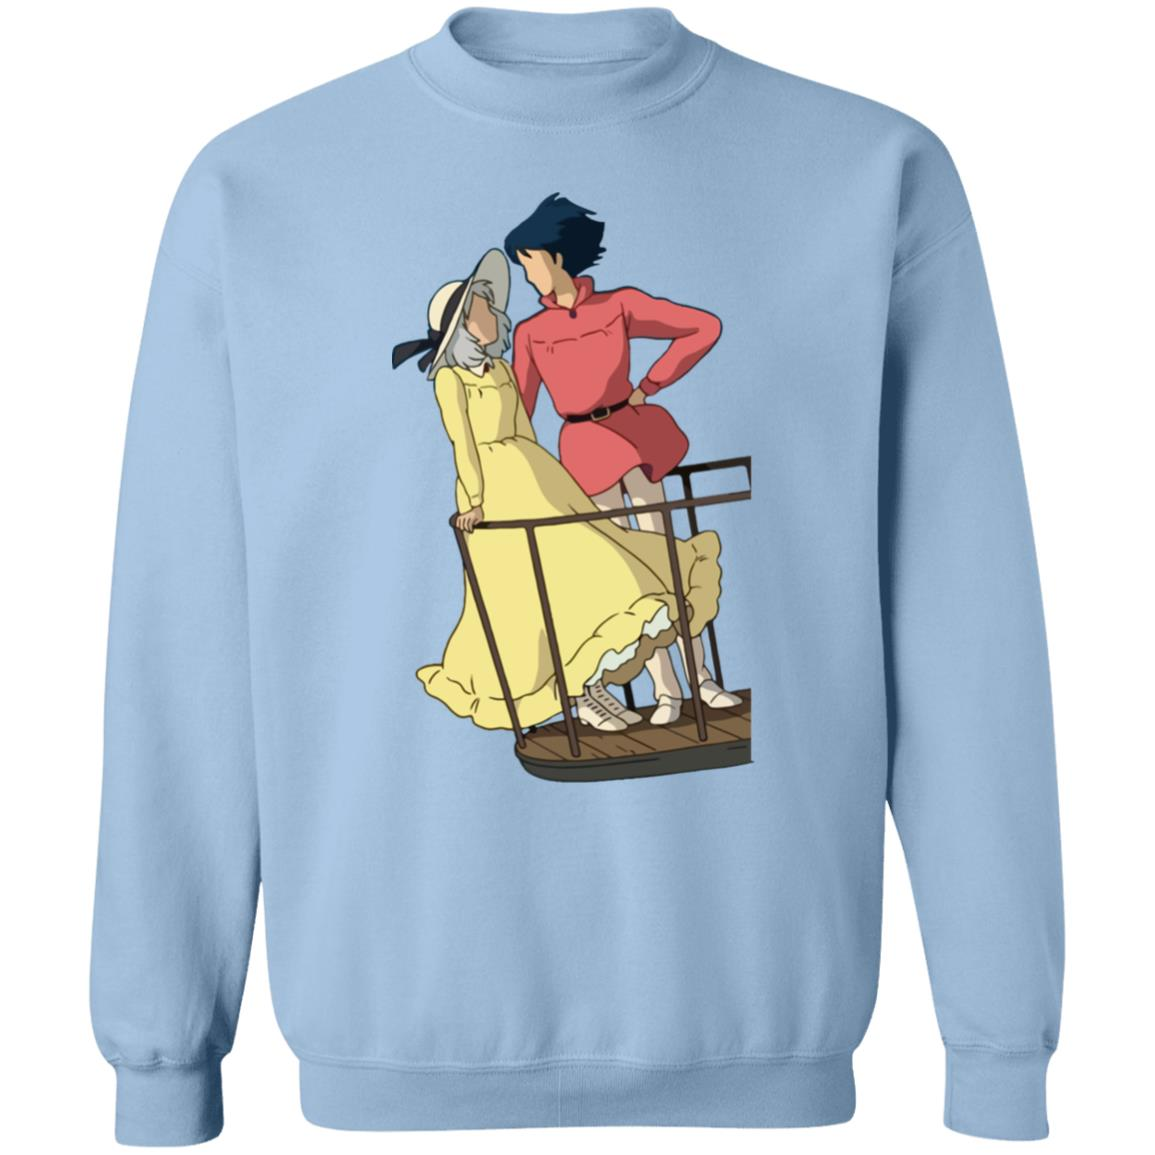 Howl's Moving Castle – Sophie and Howl Gazing at Each other Sweatshirt